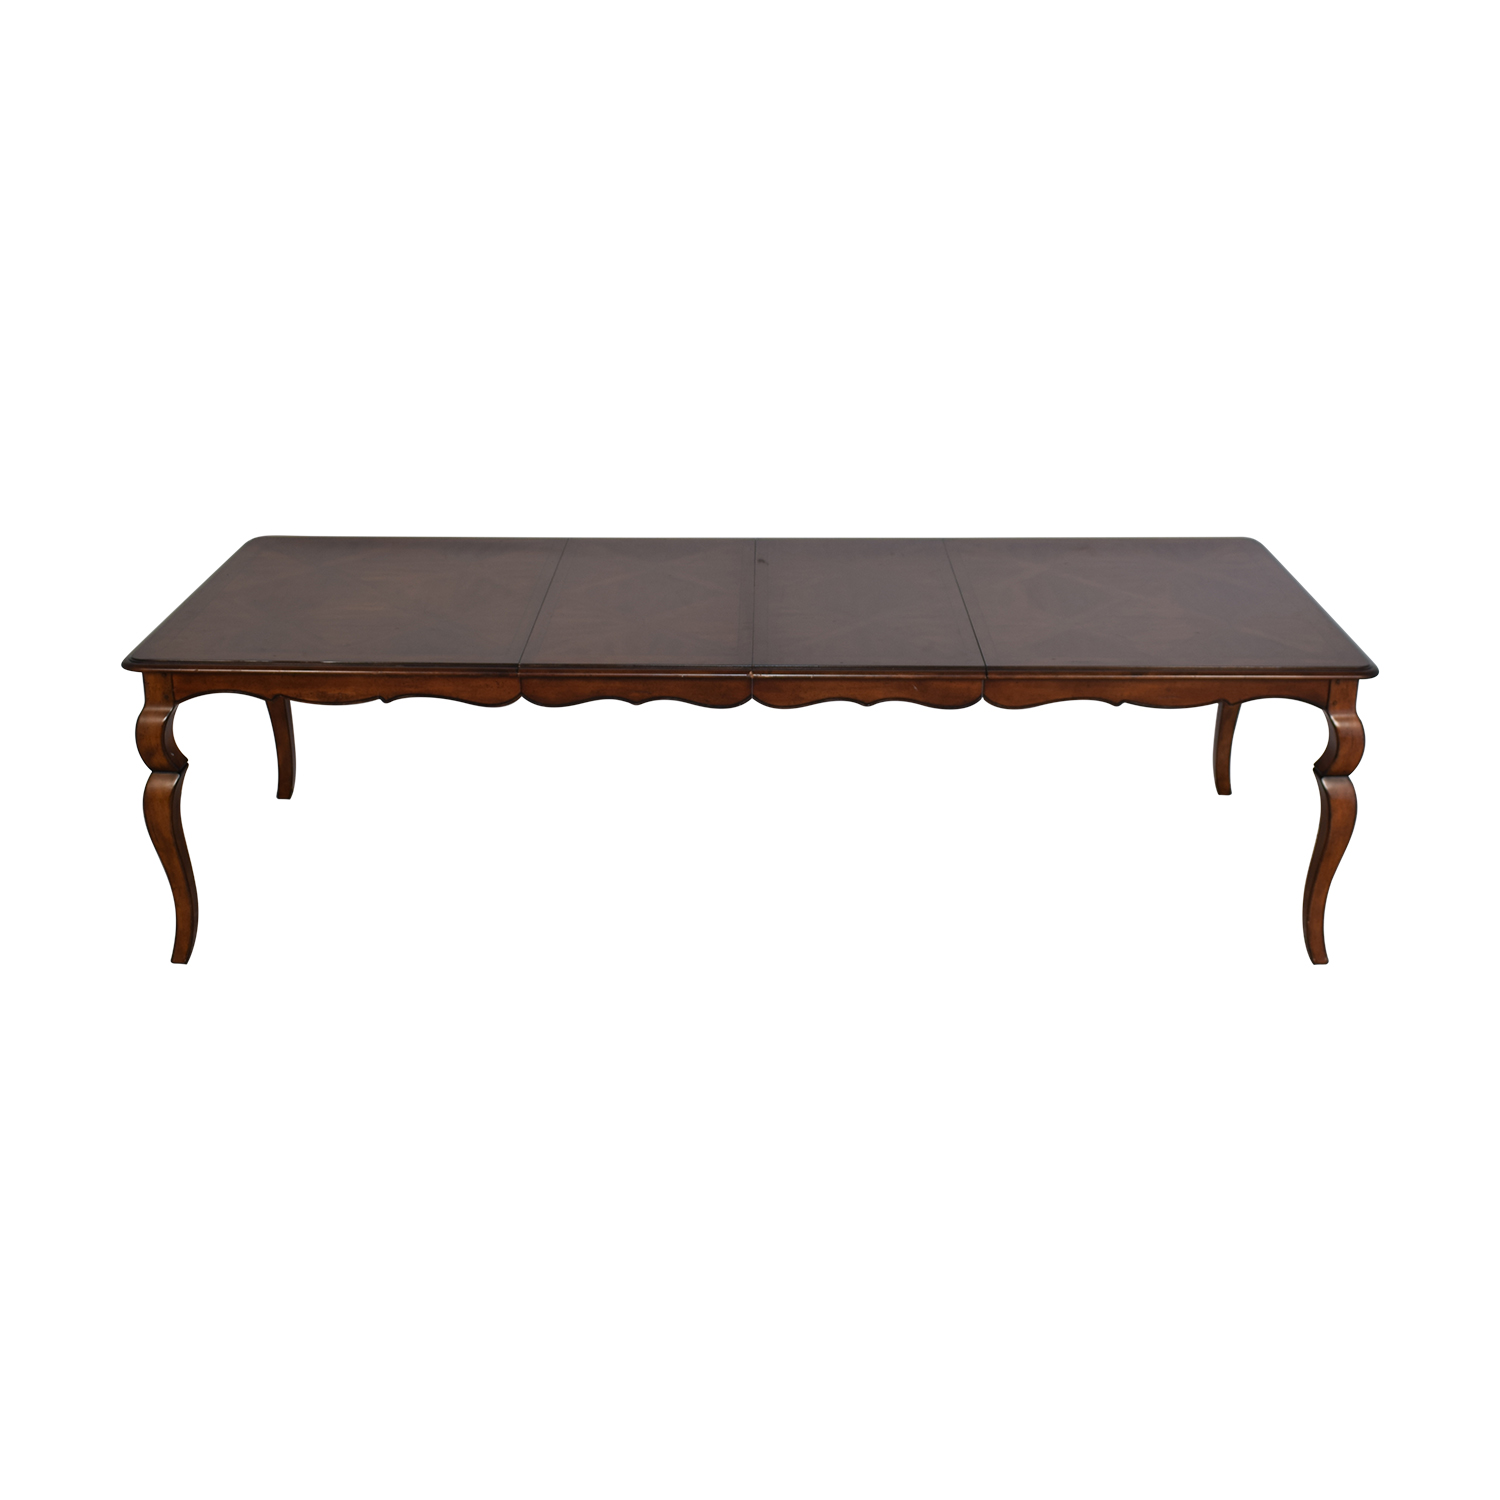 Drexel Heritage Drexel Heritage Extendable Dining Table on sale